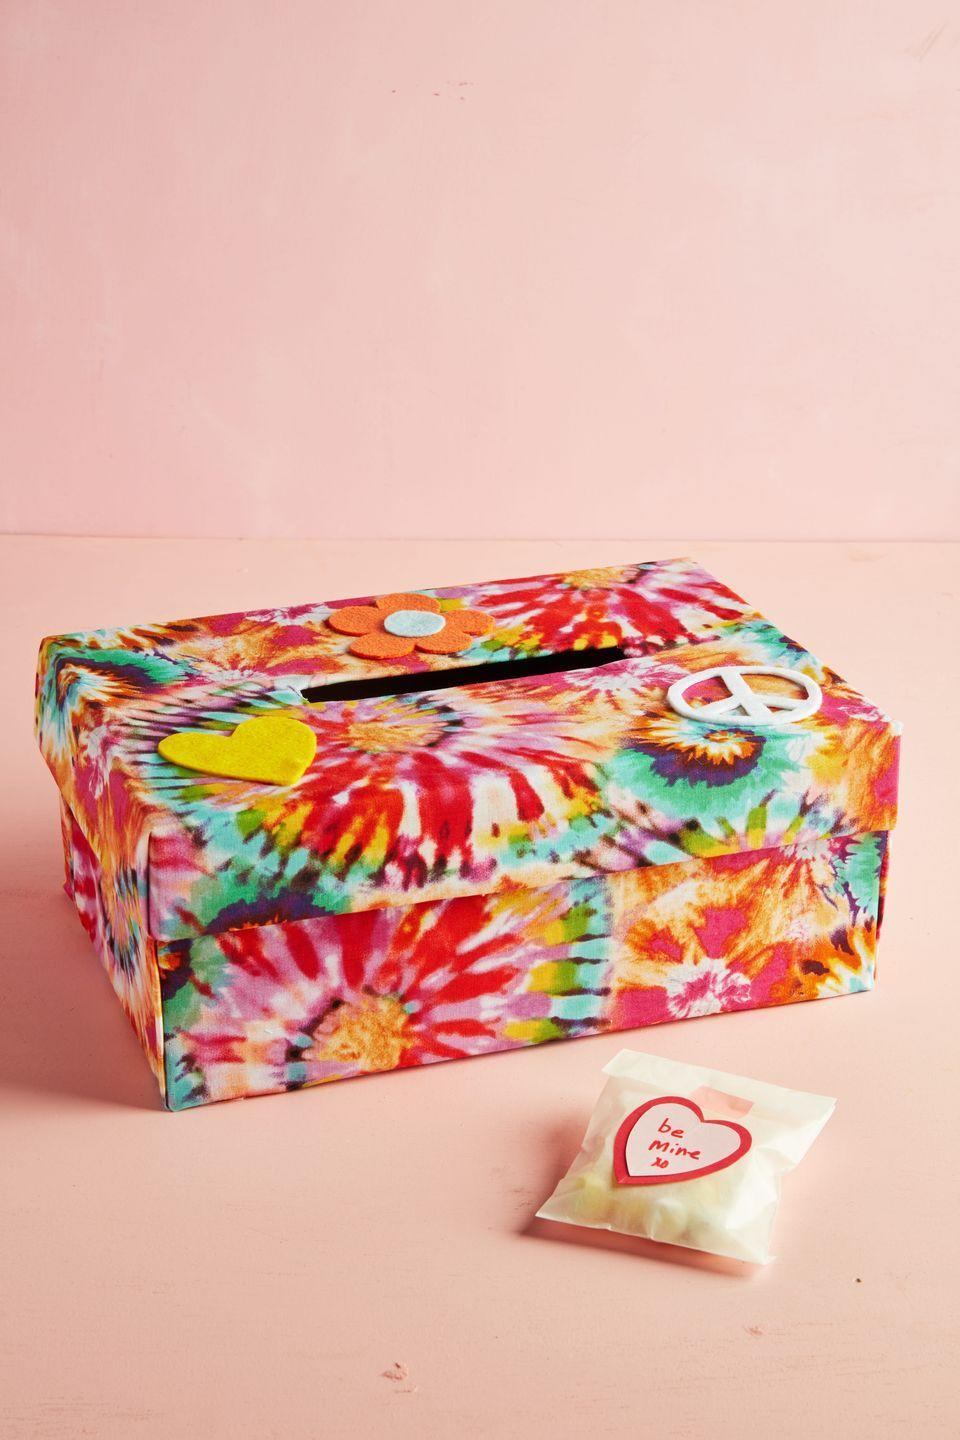 "<p>Spread peace and love with this tie-dye fabric-wrapped box.</p><p><strong>To make:</strong> Cut a slit in the top of a box (you can use a two part box or a folding lid box). Wrap box with tie dye fabric; adhering it with double sided tape or spray adhesive. Cut out decals from felt and glue to the top of the box. <br></p><p><a class=""link rapid-noclick-resp"" href=""https://go.redirectingat.com?id=74968X1596630&url=https%3A%2F%2Fwww.etsy.com%2Fmarket%2Ftie_dye_fabric&sref=https%3A%2F%2Fwww.countryliving.com%2Fdiy-crafts%2Fg25844424%2Fvalentines-day-boxes%2F"" rel=""nofollow noopener"" target=""_blank"" data-ylk=""slk:SHOP TIE DYE FABRIC"">SHOP TIE DYE FABRIC</a></p>"